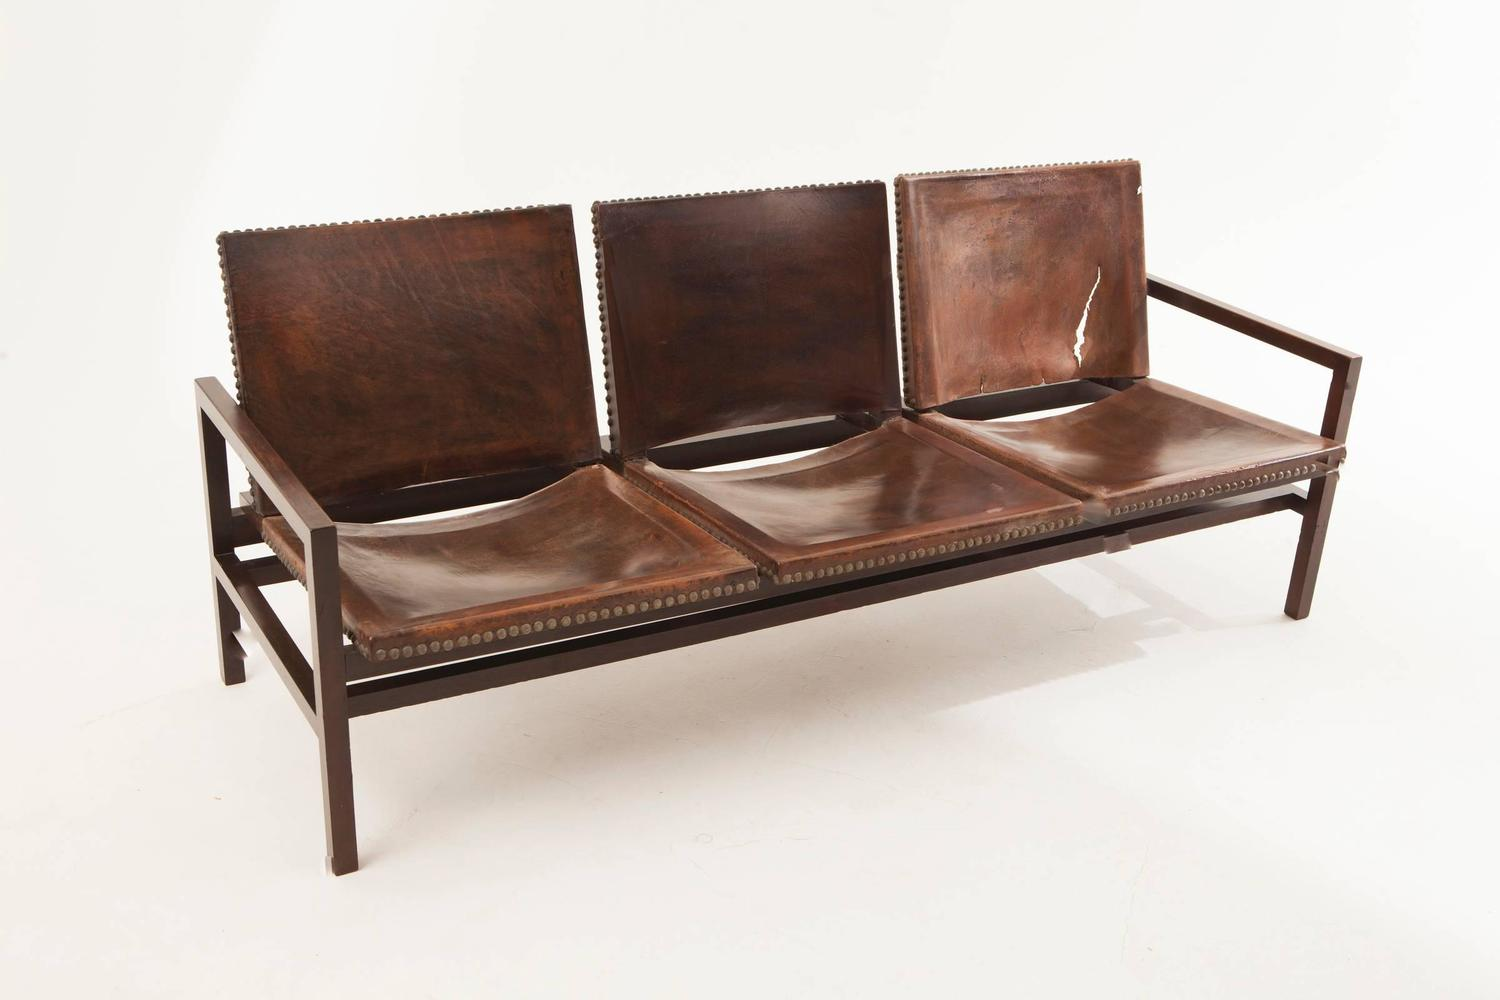 Canap and armchair lounge set for sale at 1stdibs for 7 furniture doral fl